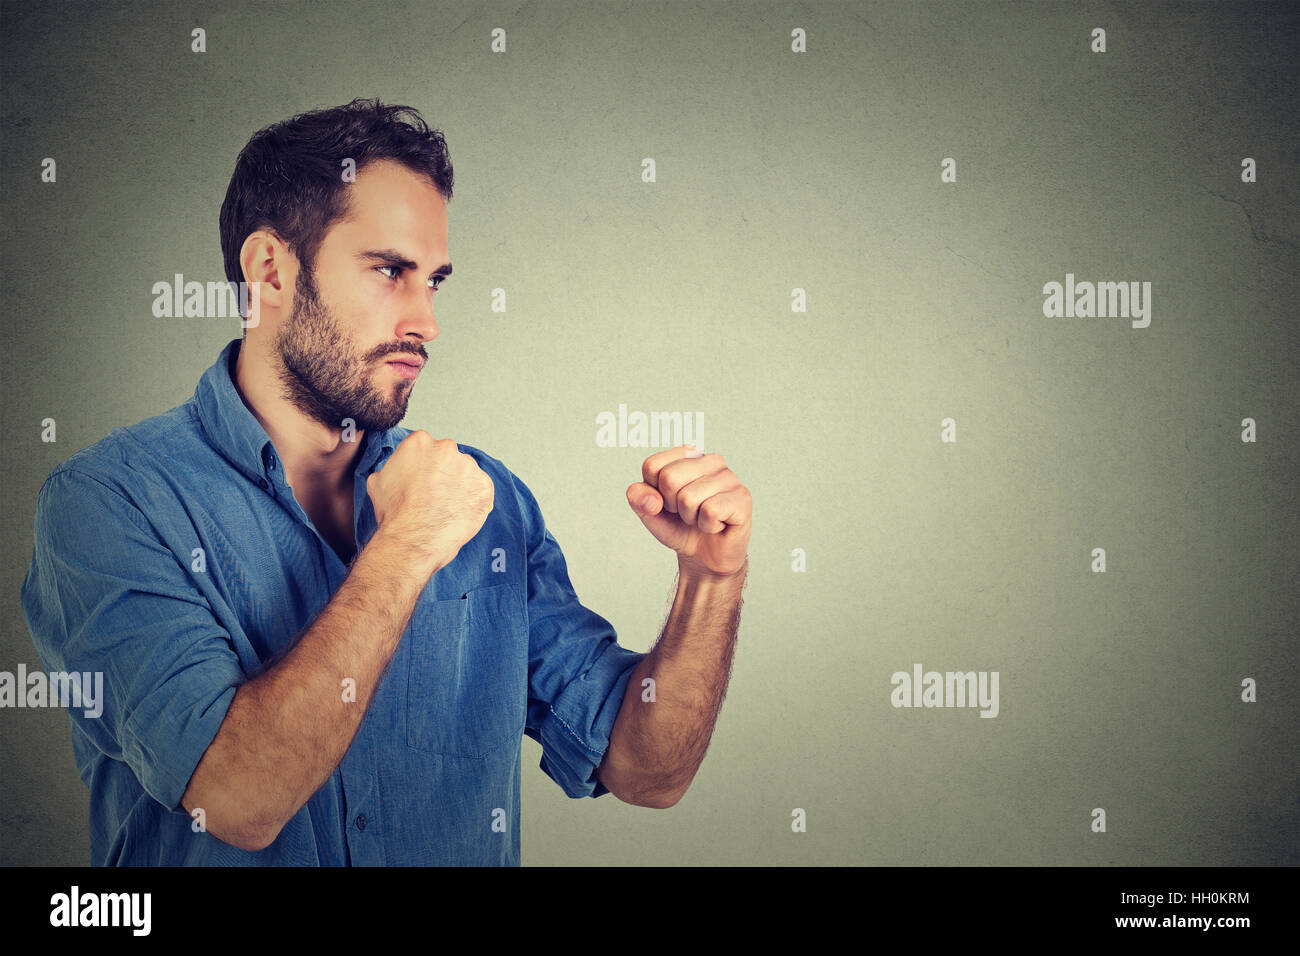 Angry young man clenching his fists - Stock Image